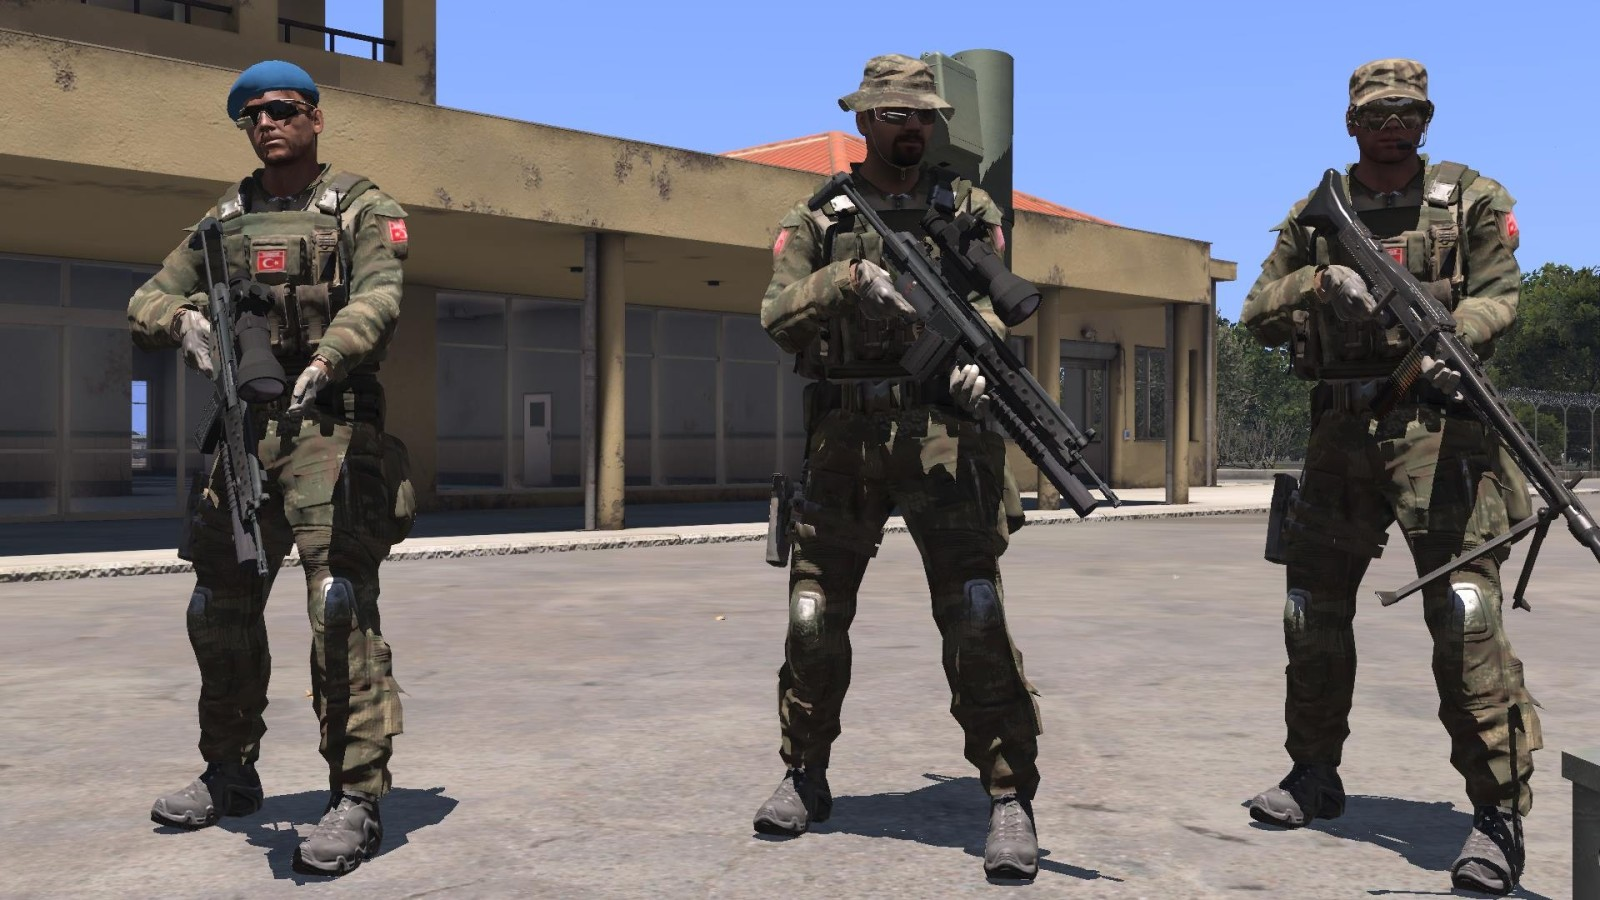 arma 3 editor weapon codes for army - FREE ONLINE